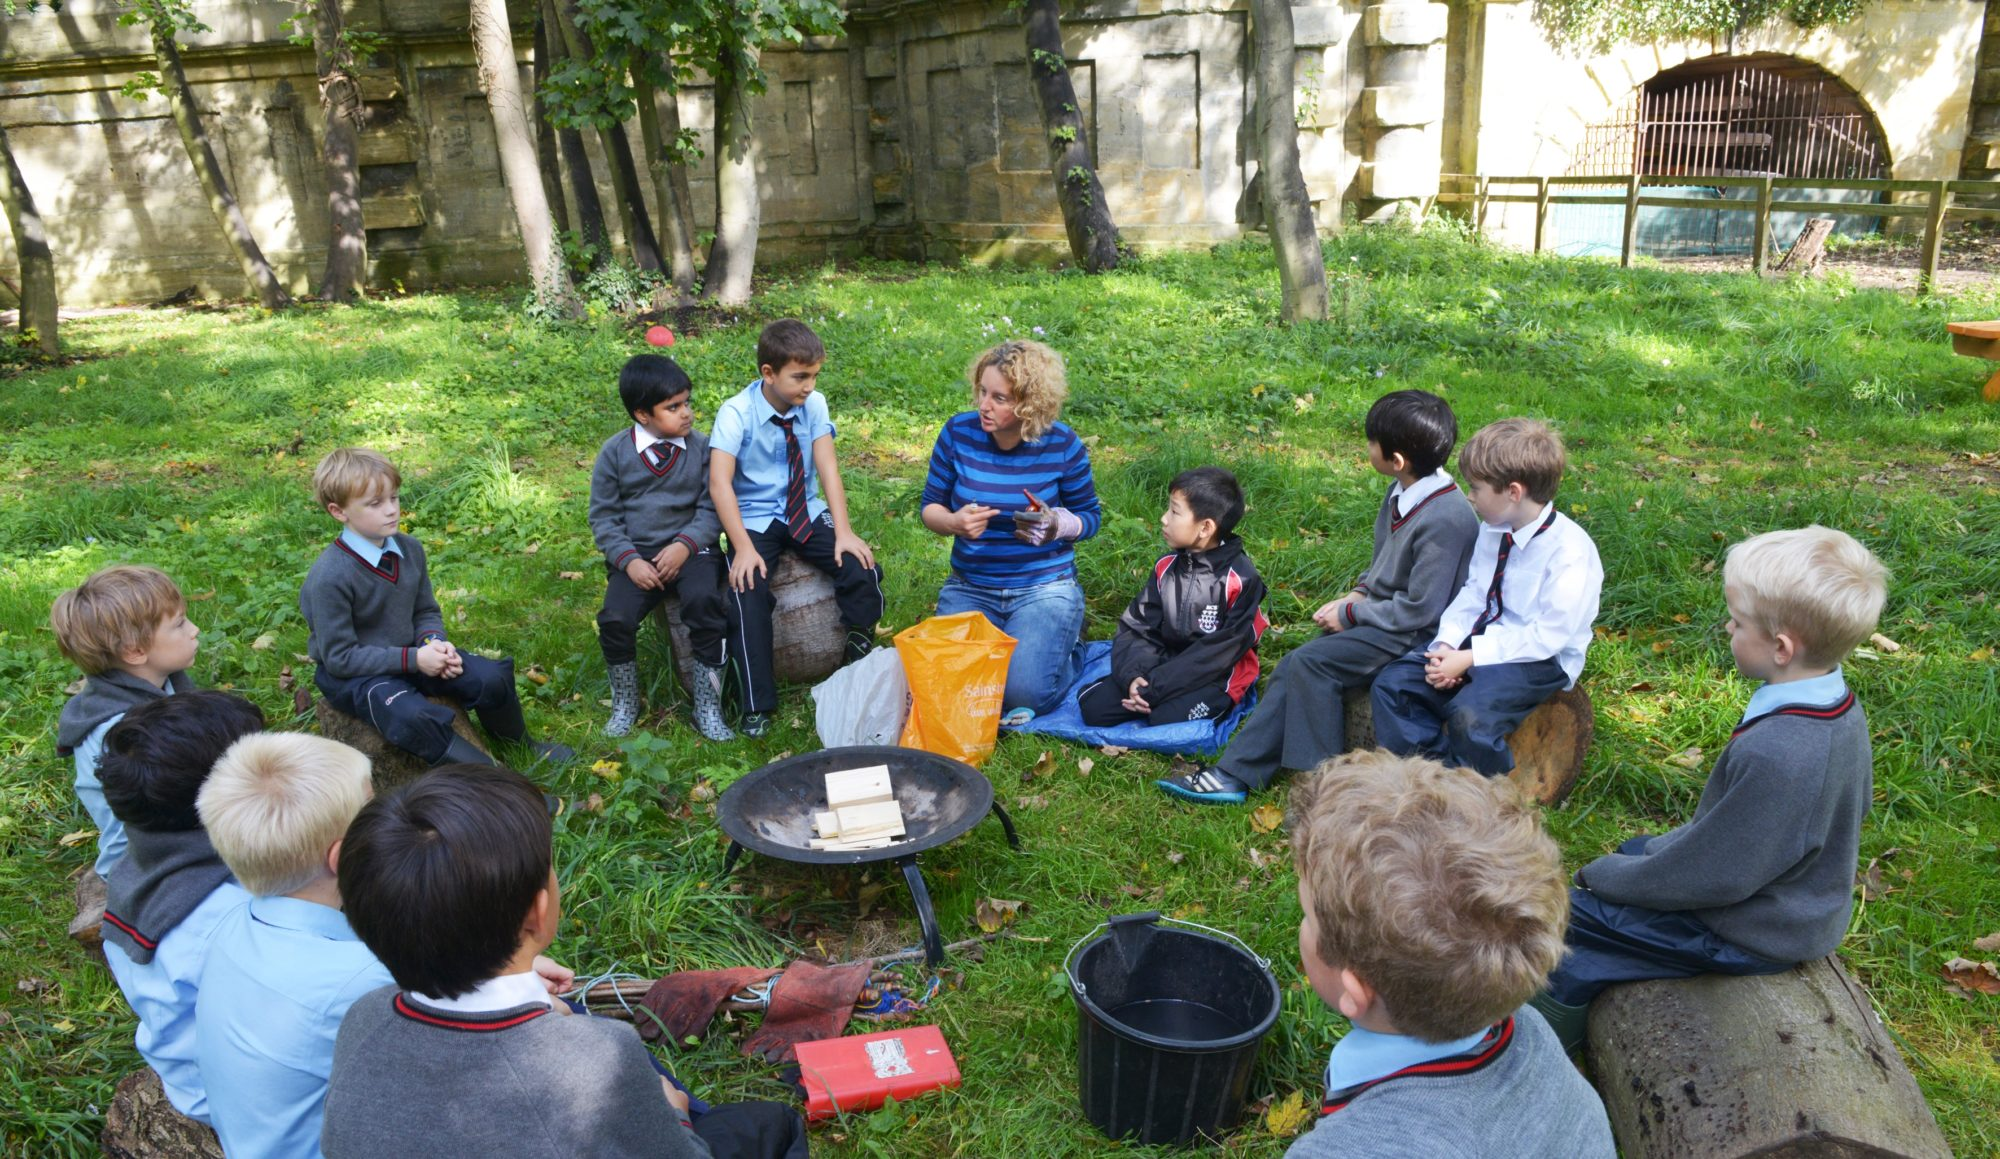 Magdalen College Junior School pupils sitting around a fire pit during Activities Afternoon